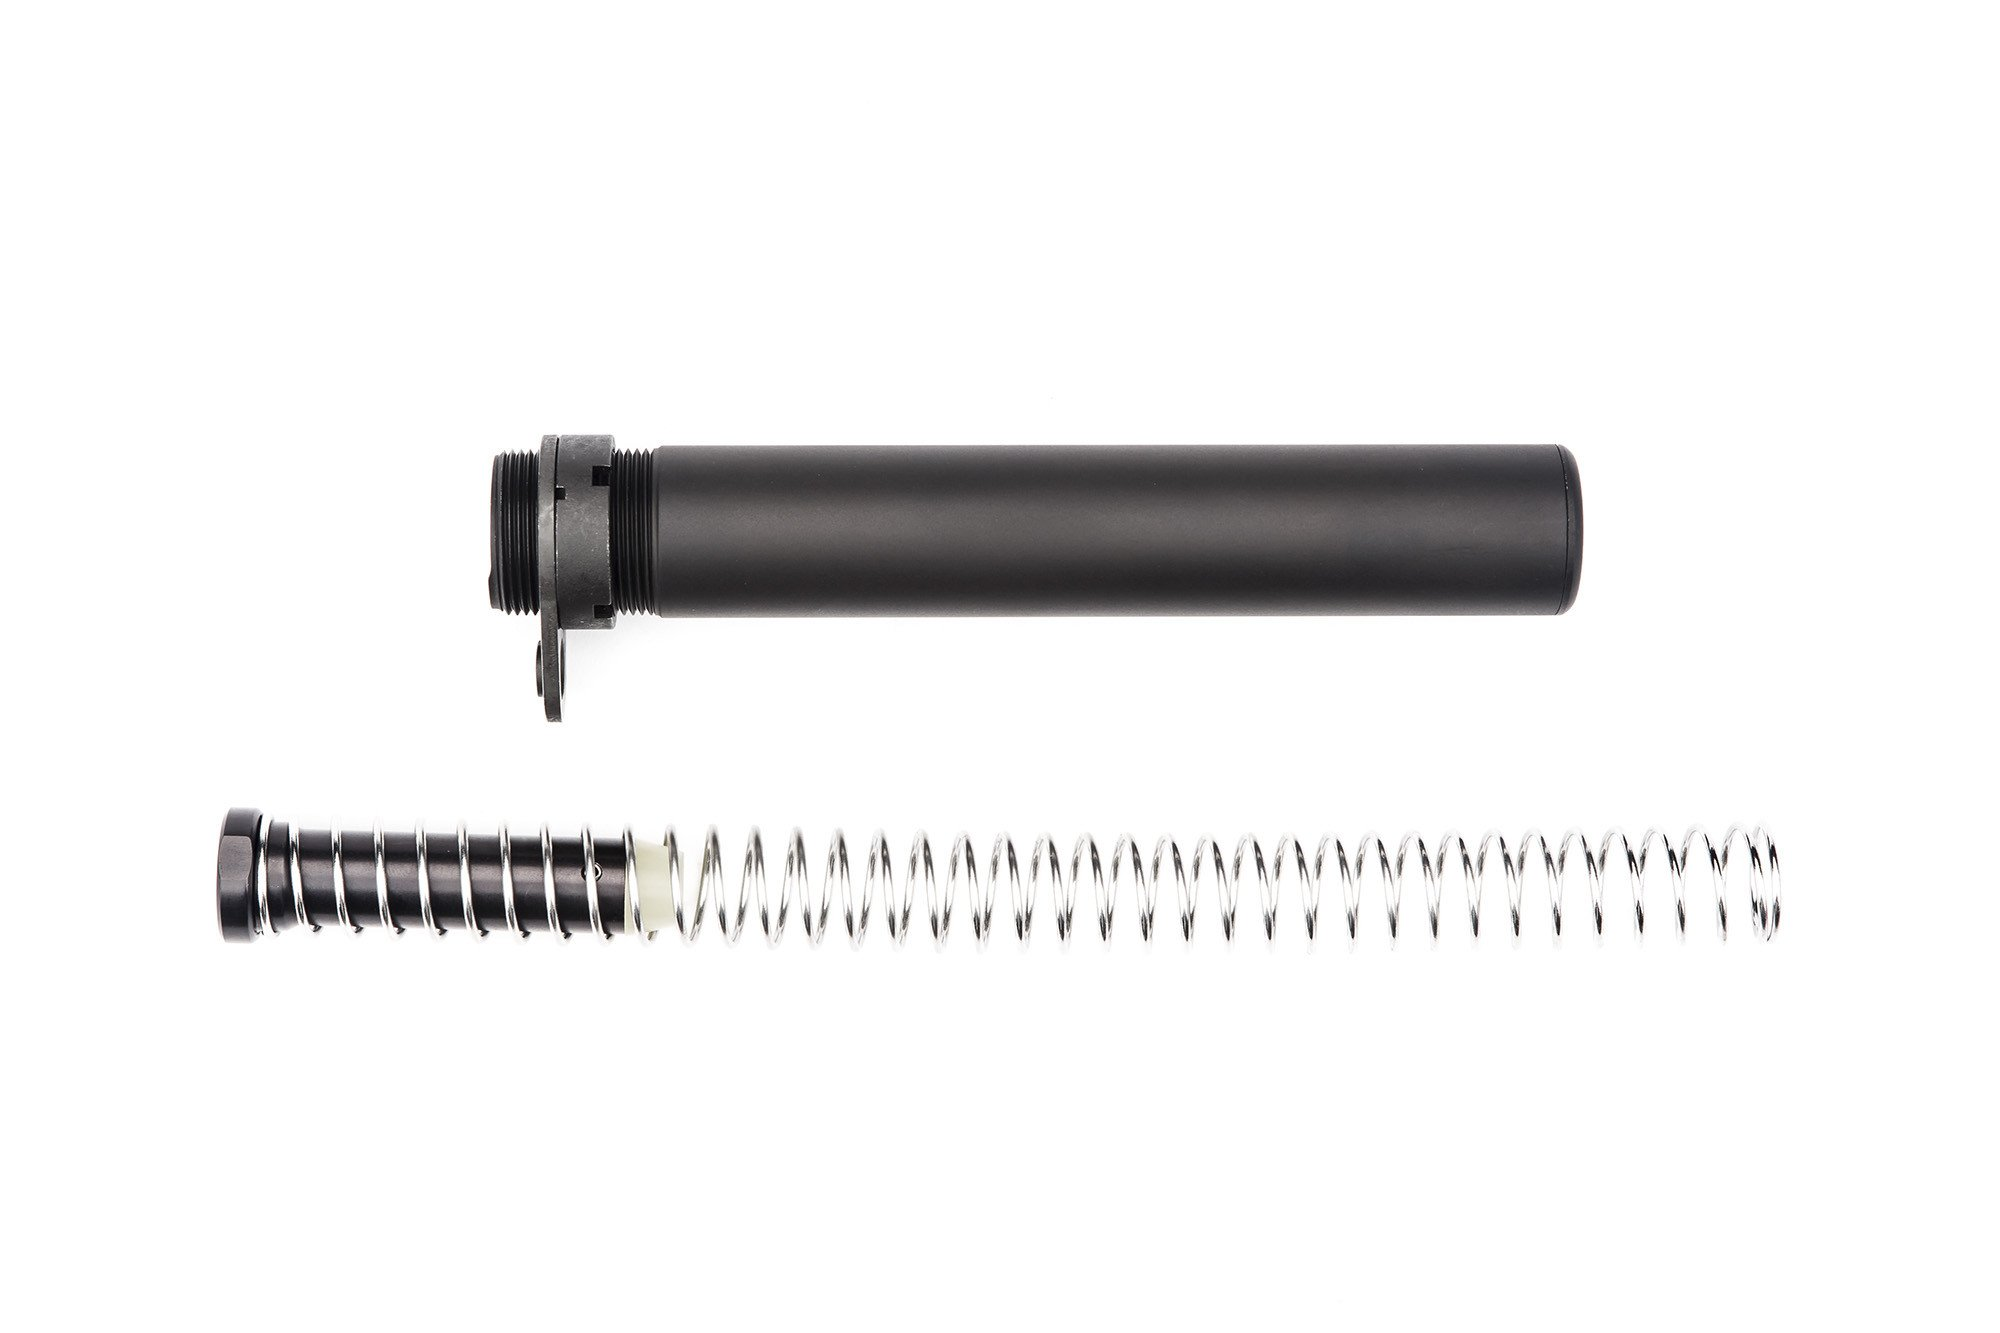 Pistol Buffer Tube Assembly